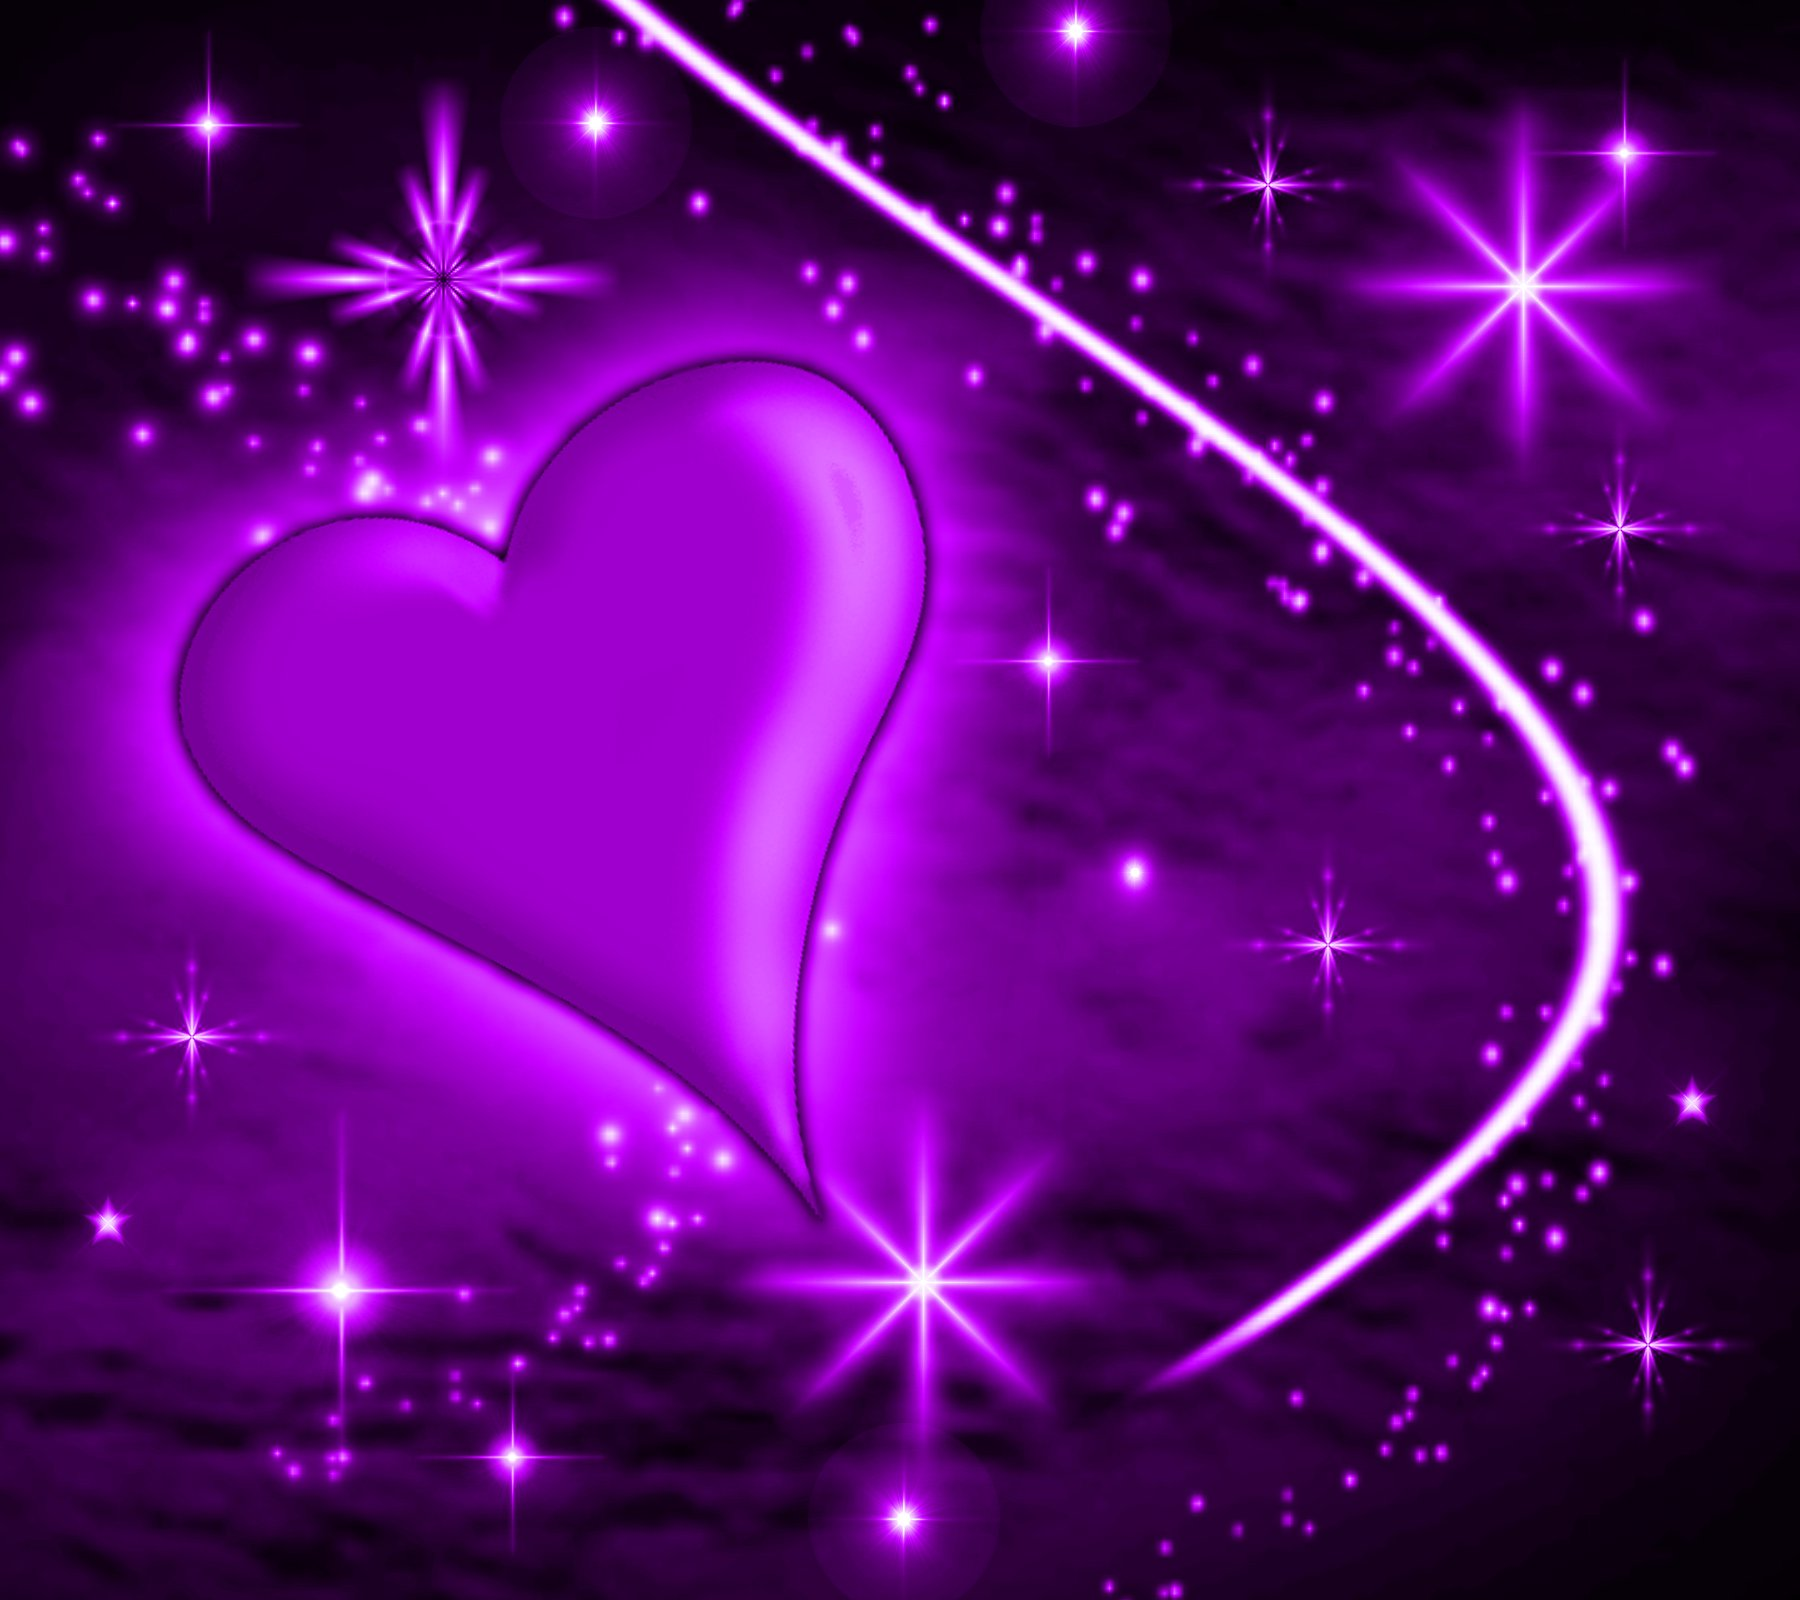 Background Wallpaper Image  Purple Heart With Plasma Stars Background    Purple Hearts And Stars Background